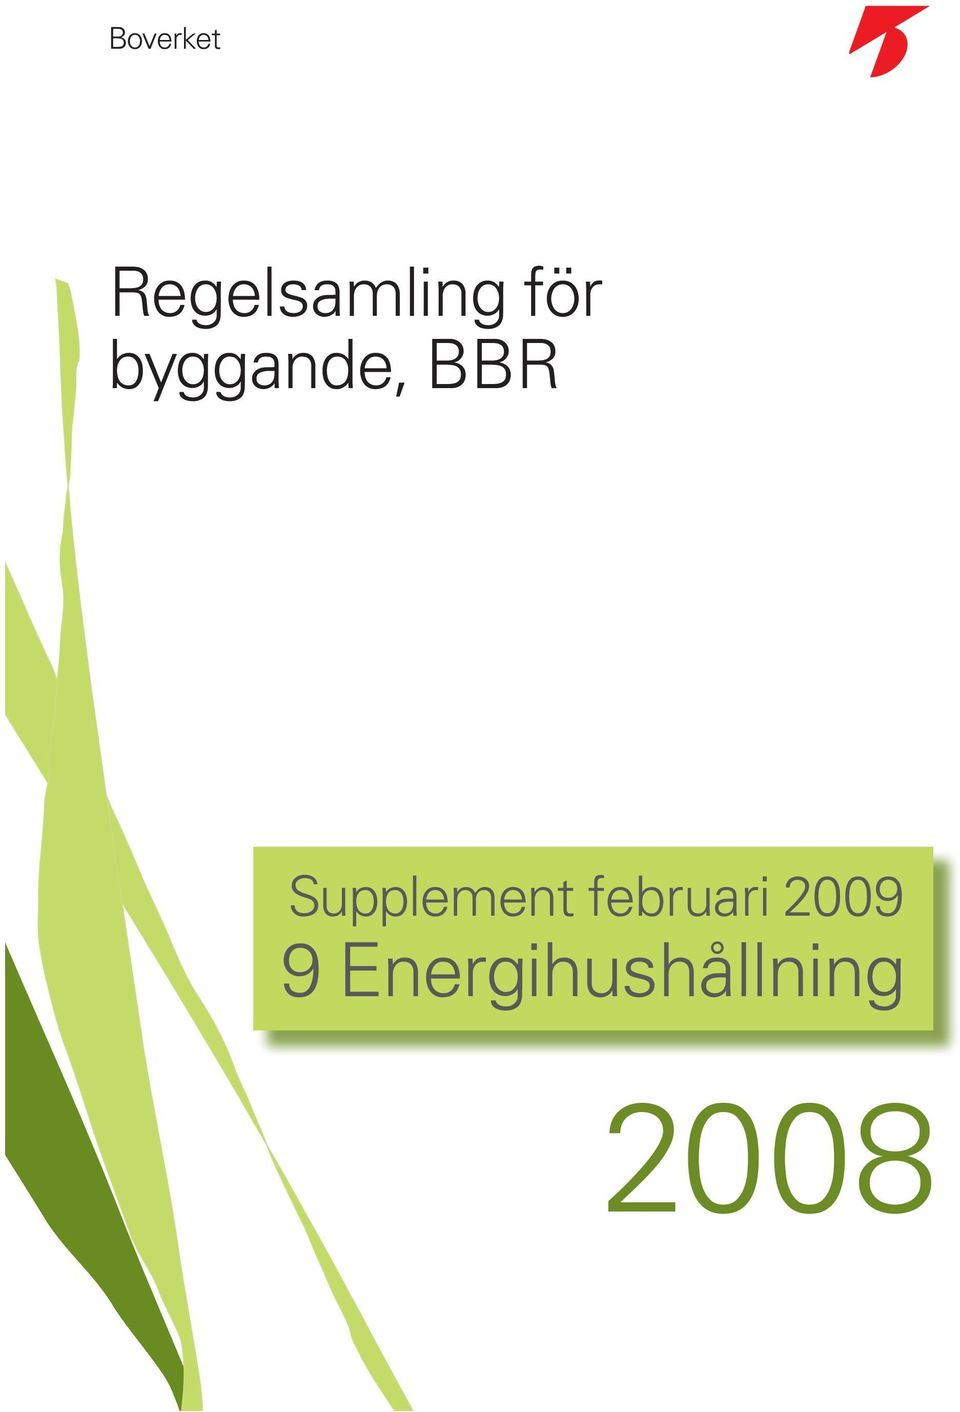 Supplement februari